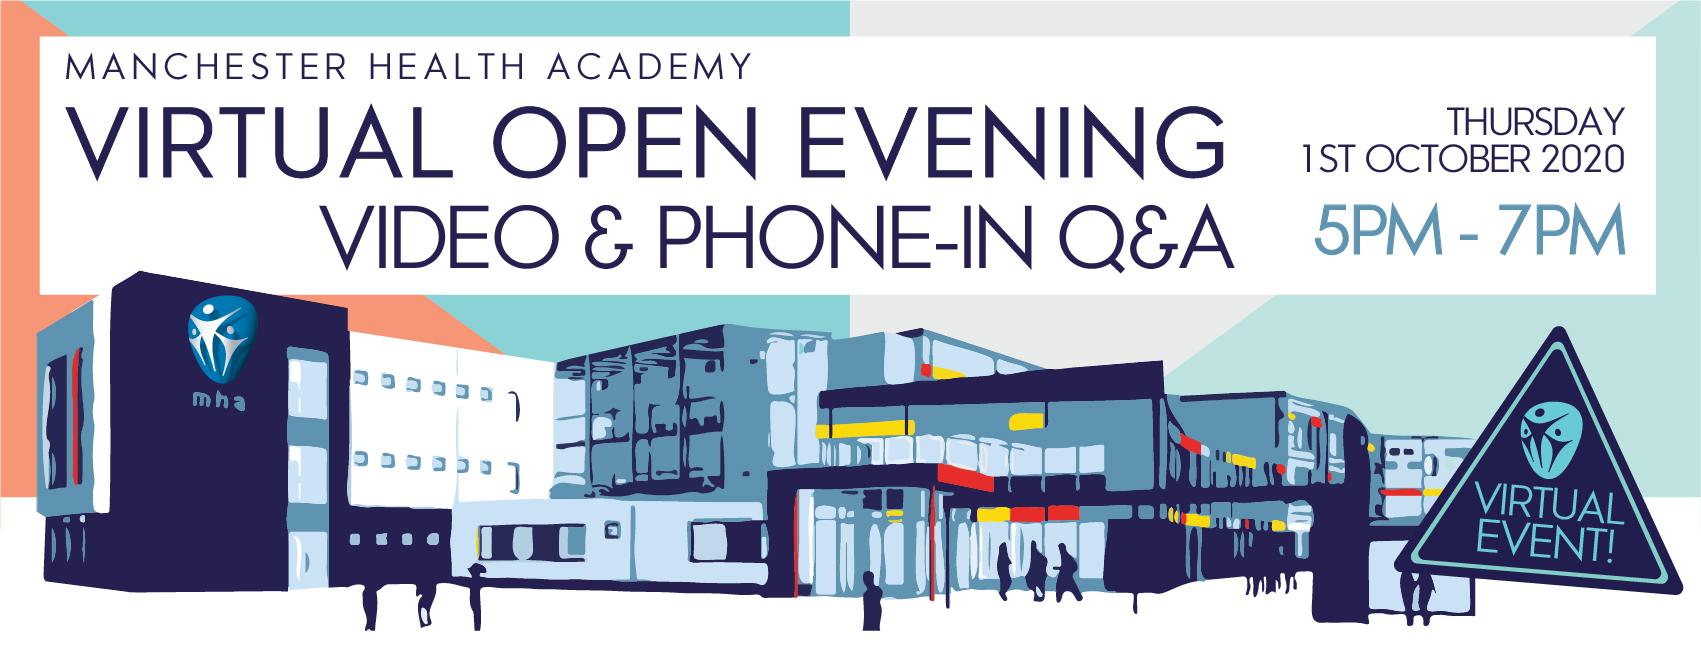 Open Evening Video and Phone-In Q&A